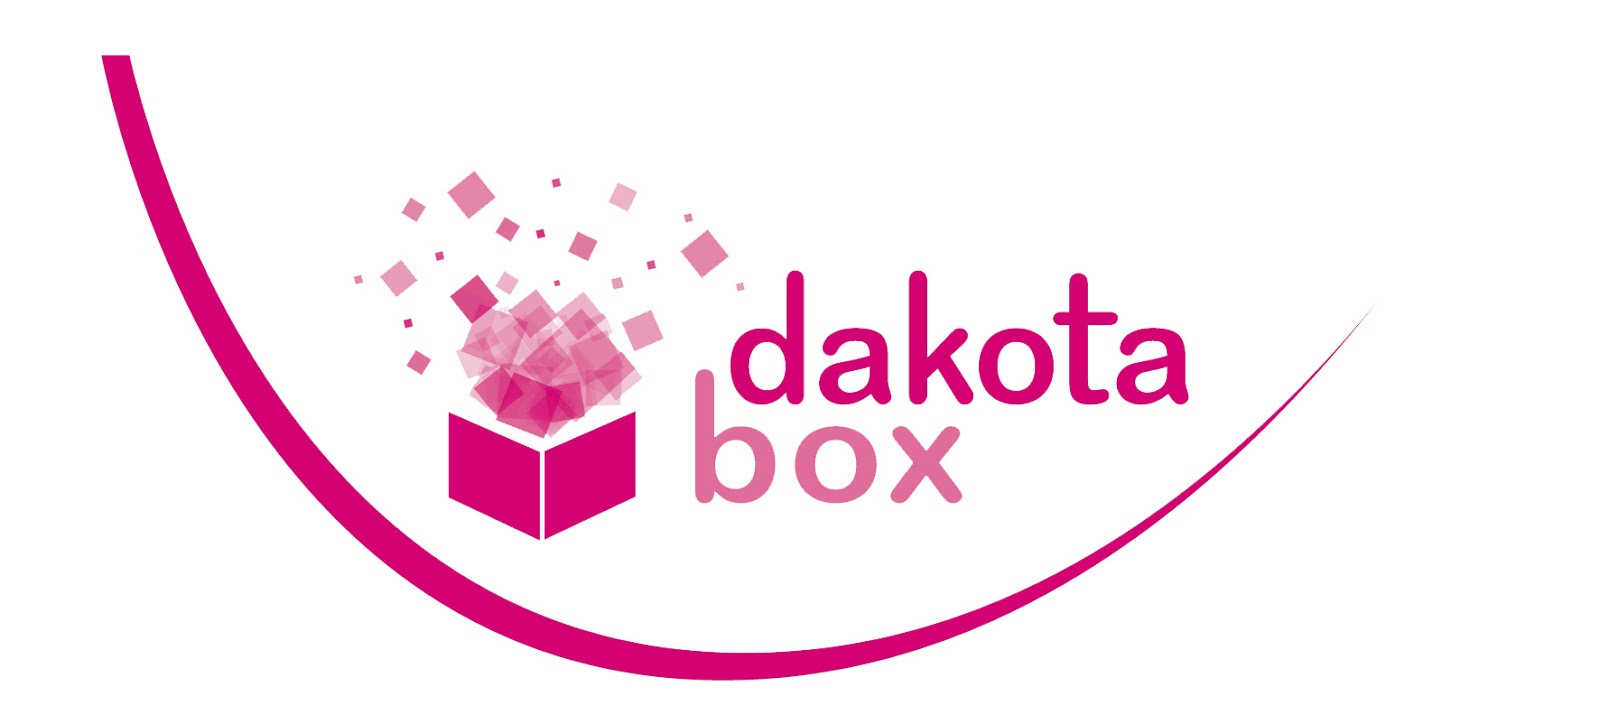 dakotabox cheque regalo